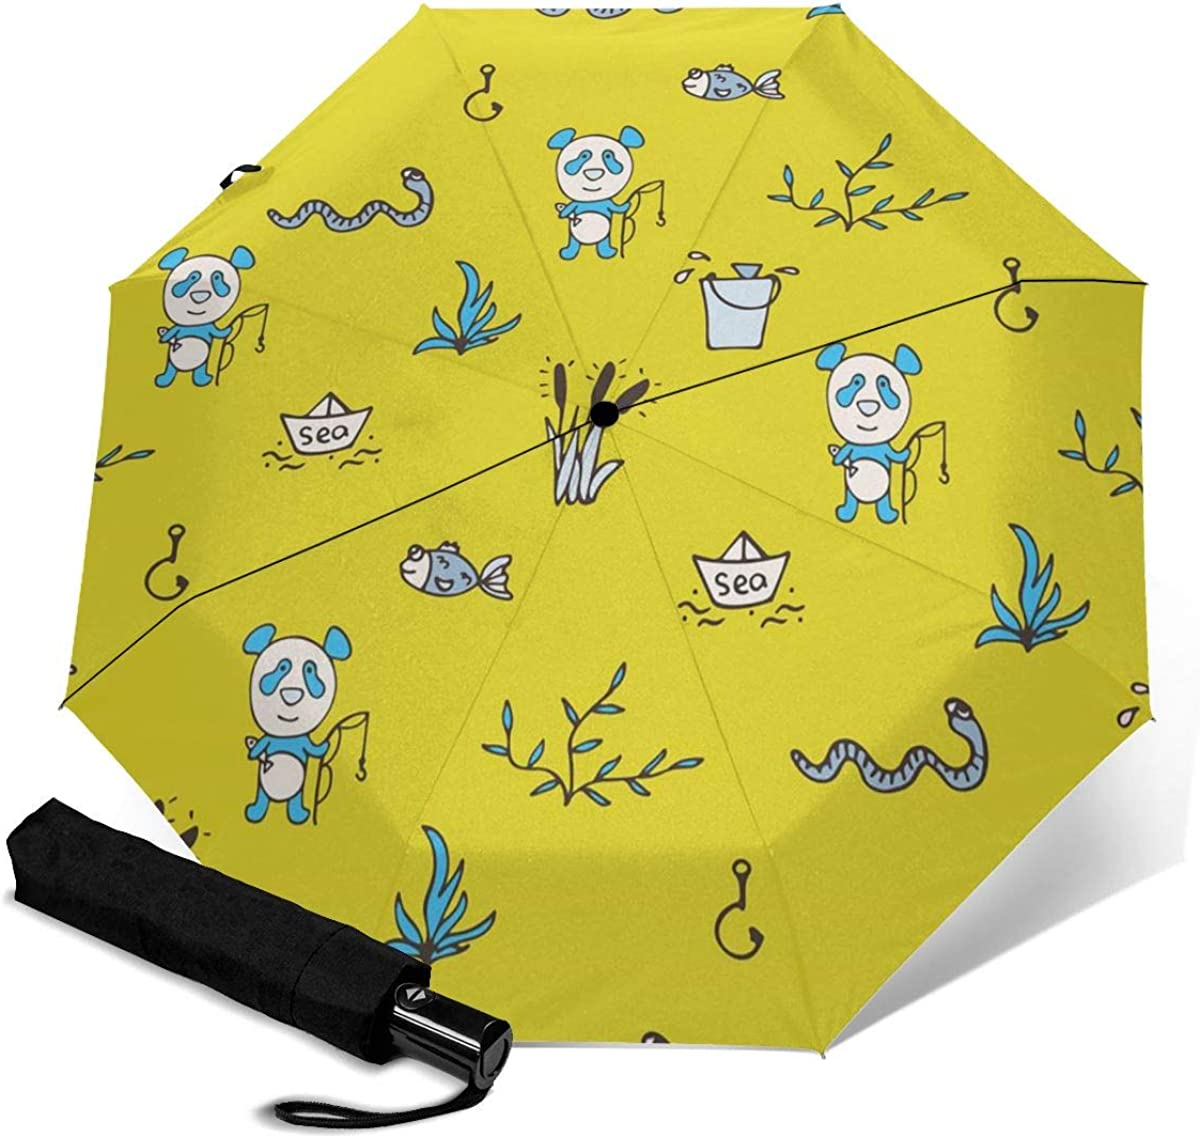 Goldfish Bear And Snake Compact Travel Umbrella Windproof Reinforced Canopy 8 Ribs Umbrella Auto Open And Close Button Personalized